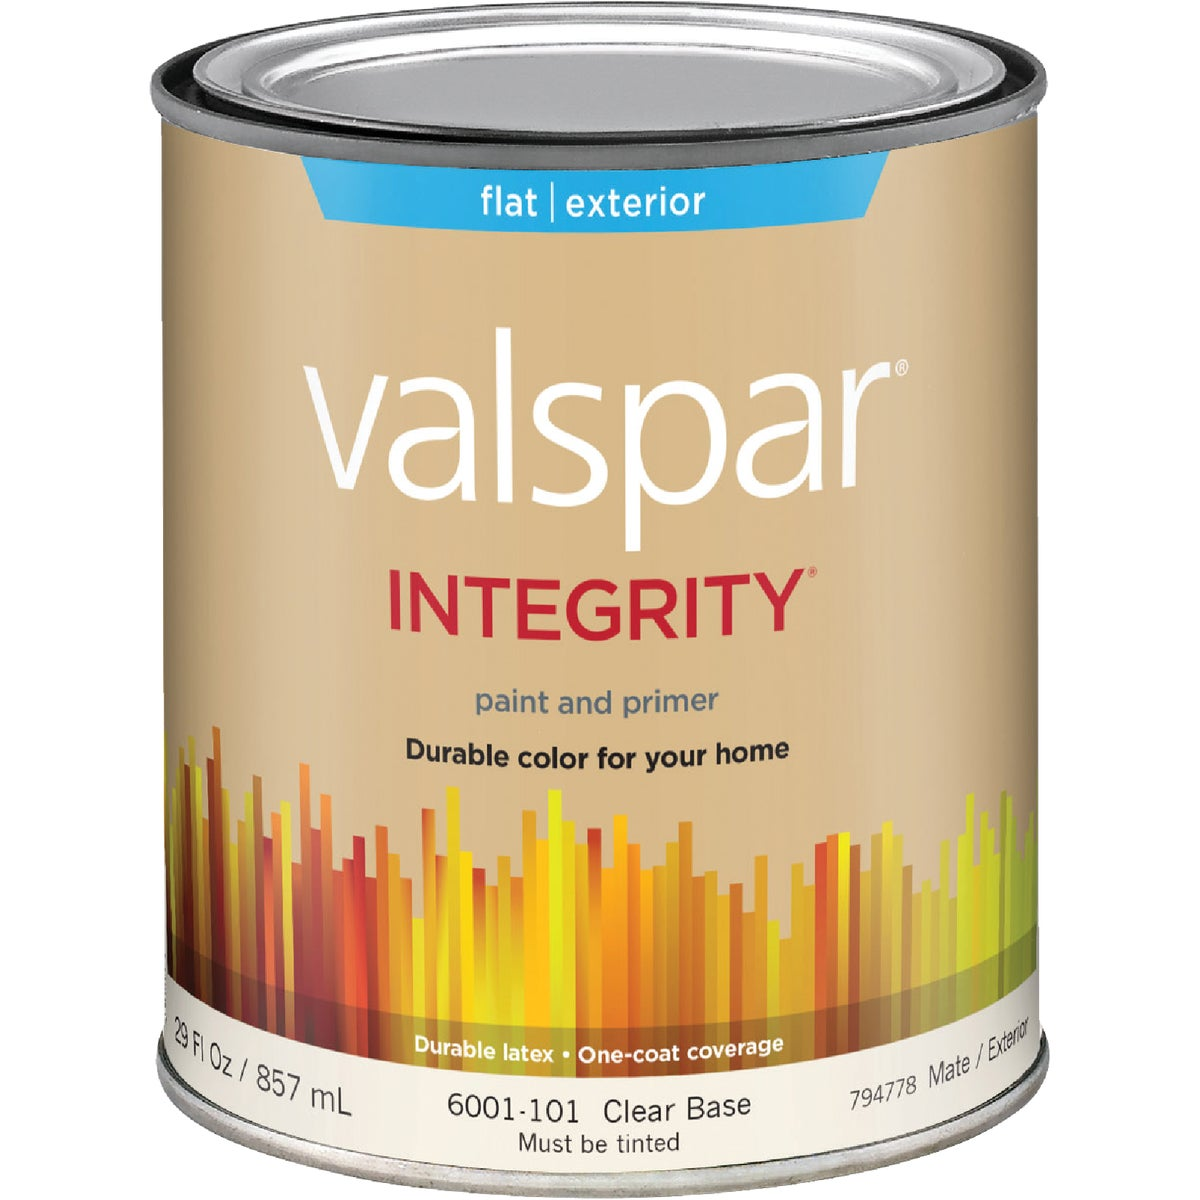 EXT FLAT CLEAR BS PAINT - 004.6001101.005 by Valspar Corp